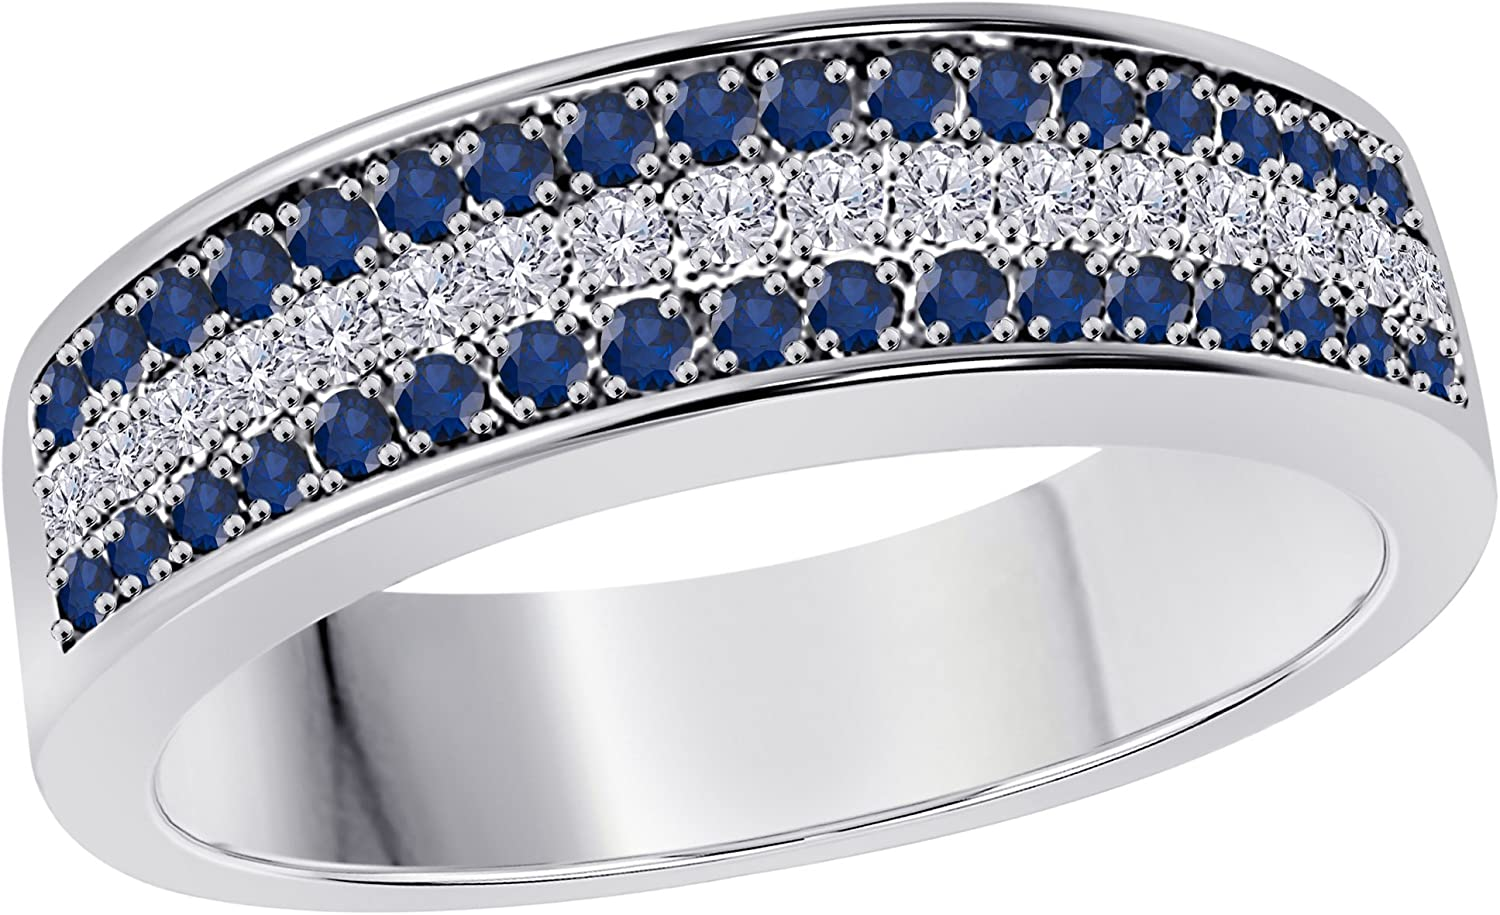 Gems and Dallas Mall Jewels 6mm 14K White Gold 2 1 Special price for a limited time W Blue Ct Over Sapphire